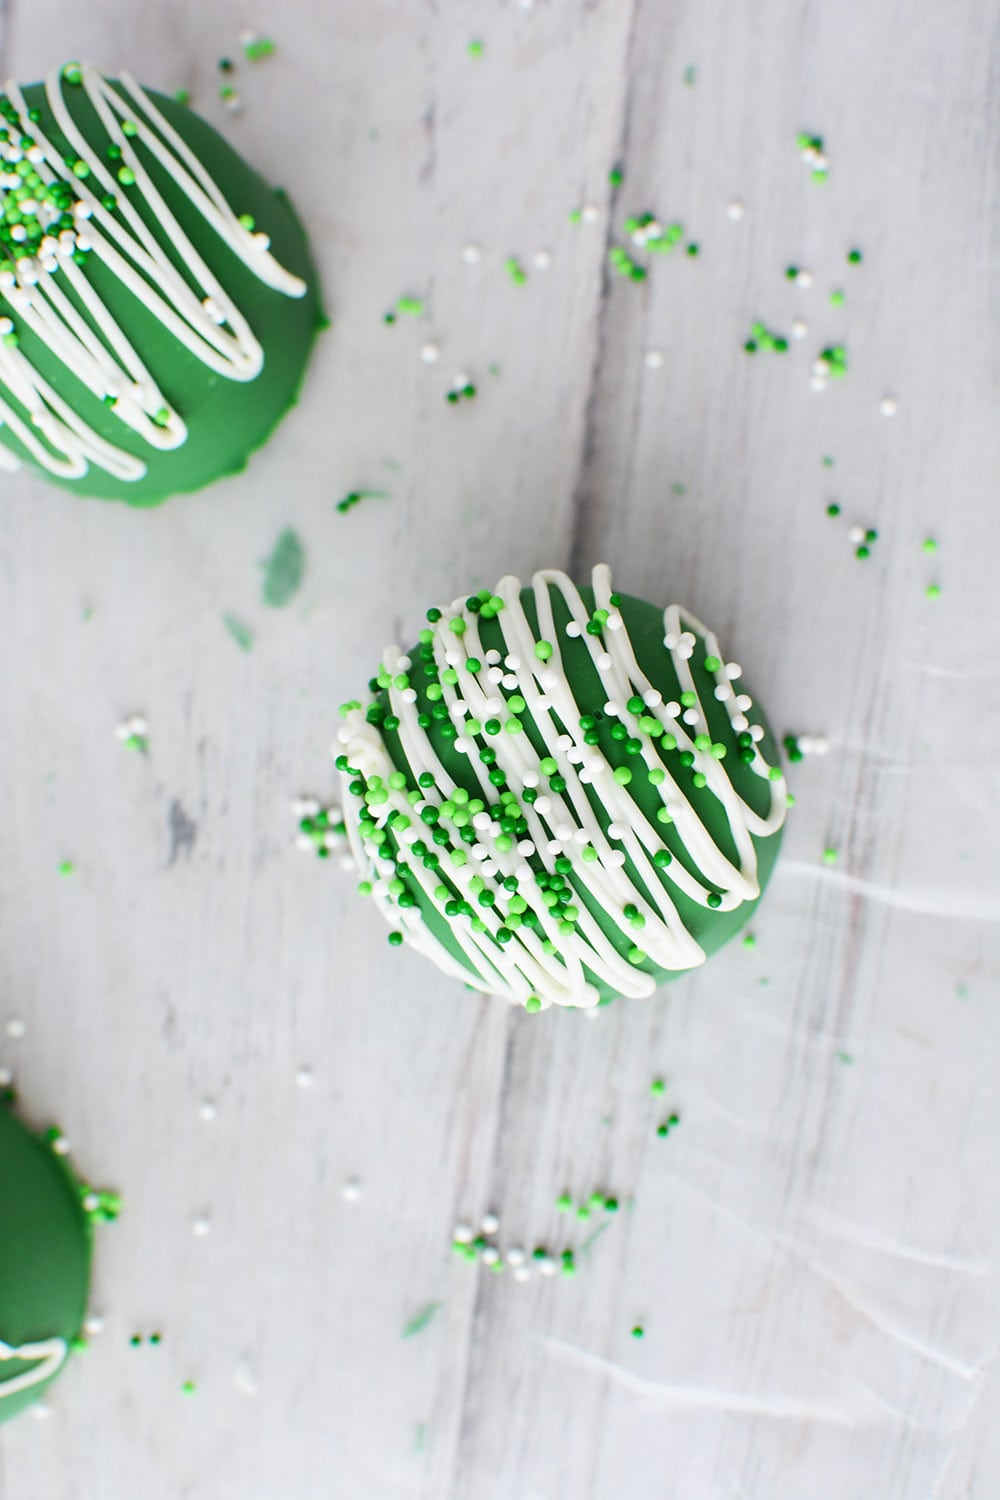 Topping a green hot chocolate bomb with St. Patrick's Day sprinkles.